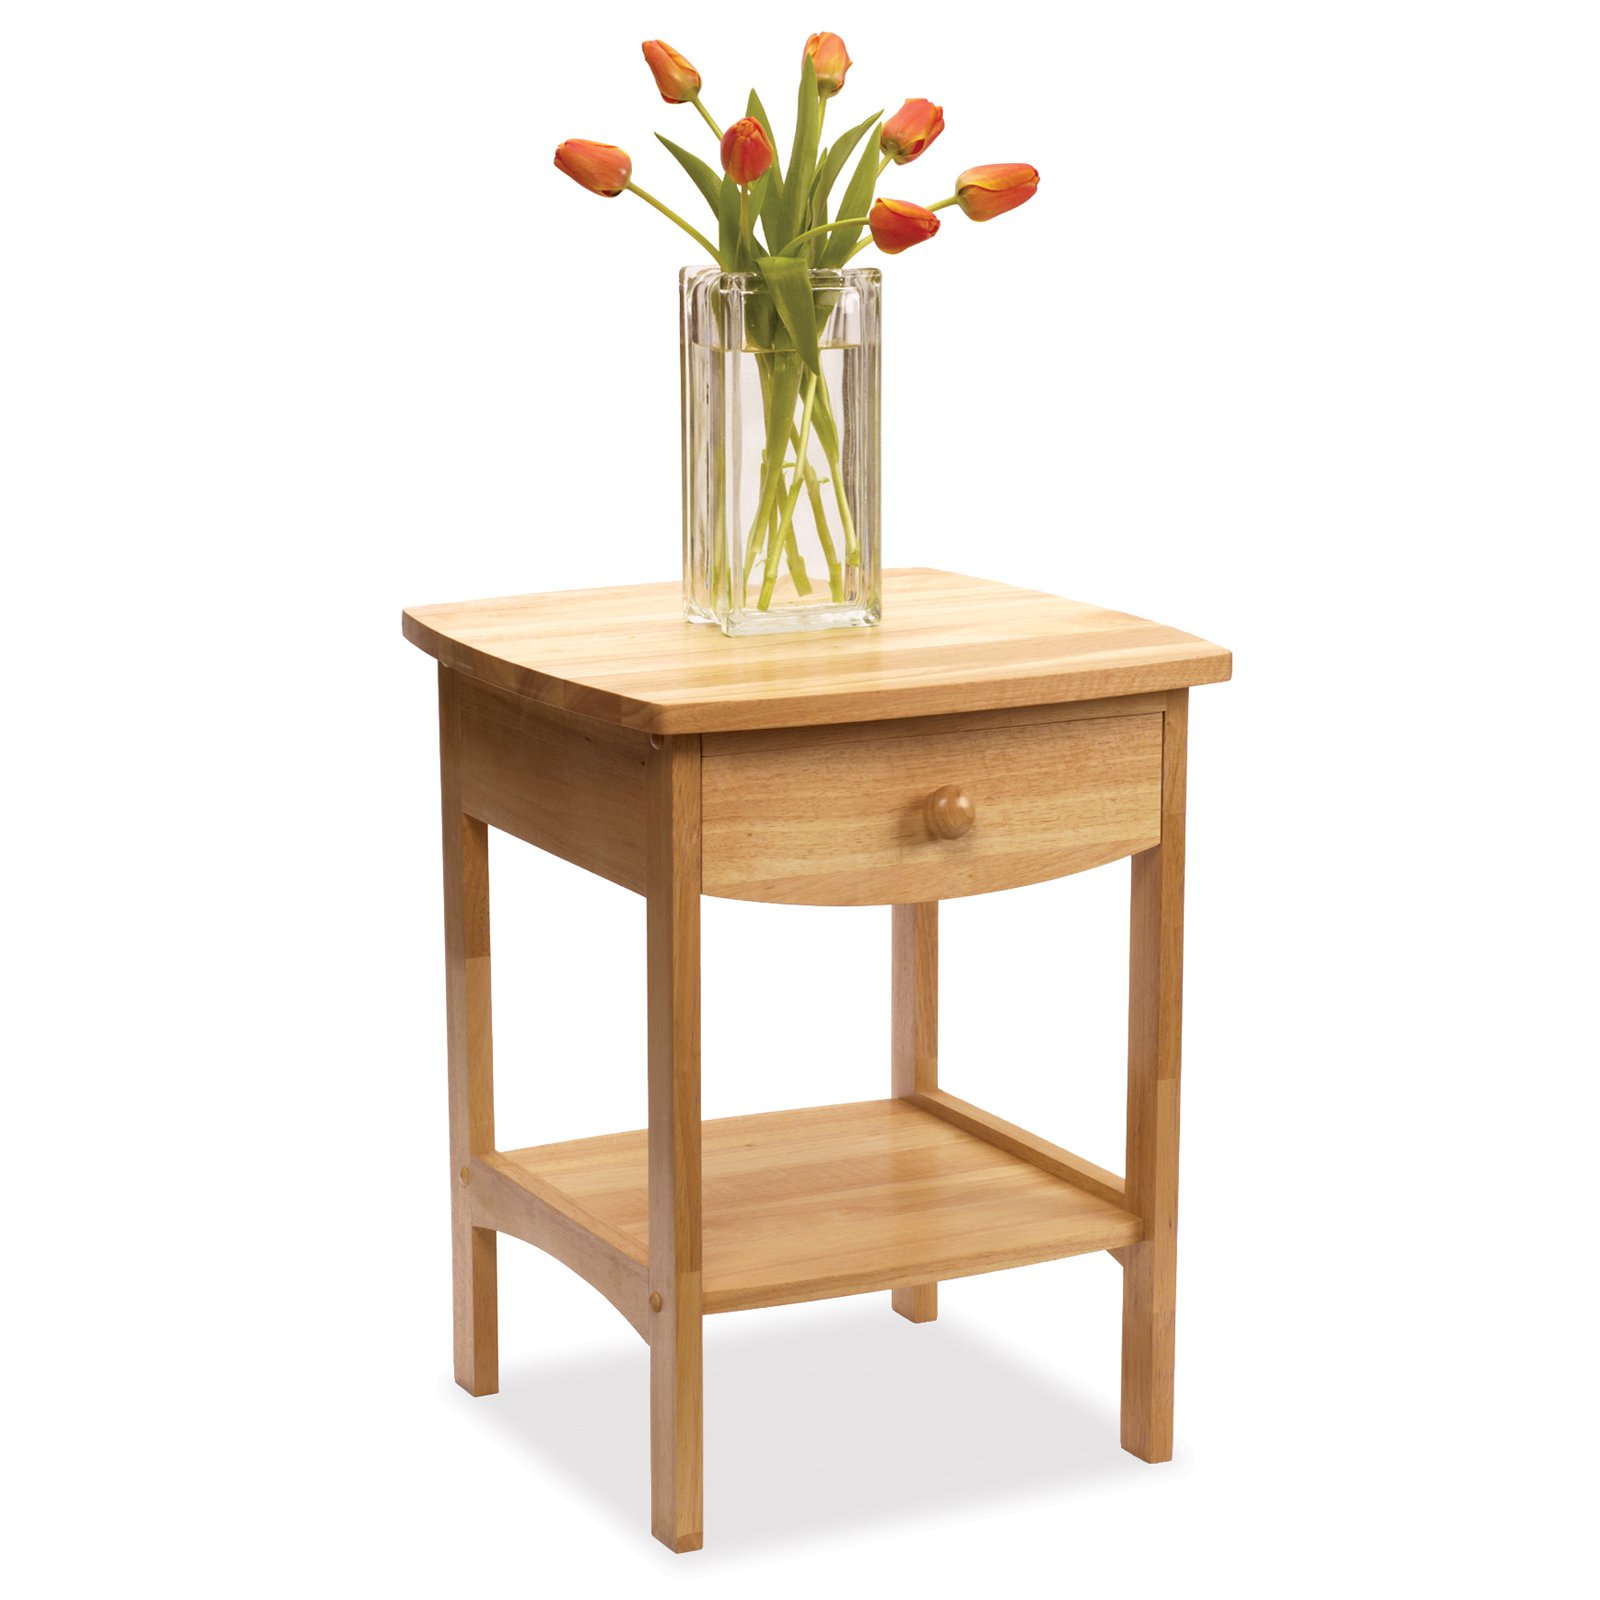 winsome belmont end table master wood beechwood accent espresso cast aluminum outdoor curtains ikea storage bins telesco legs meyda lamps marble glass tables target furniture